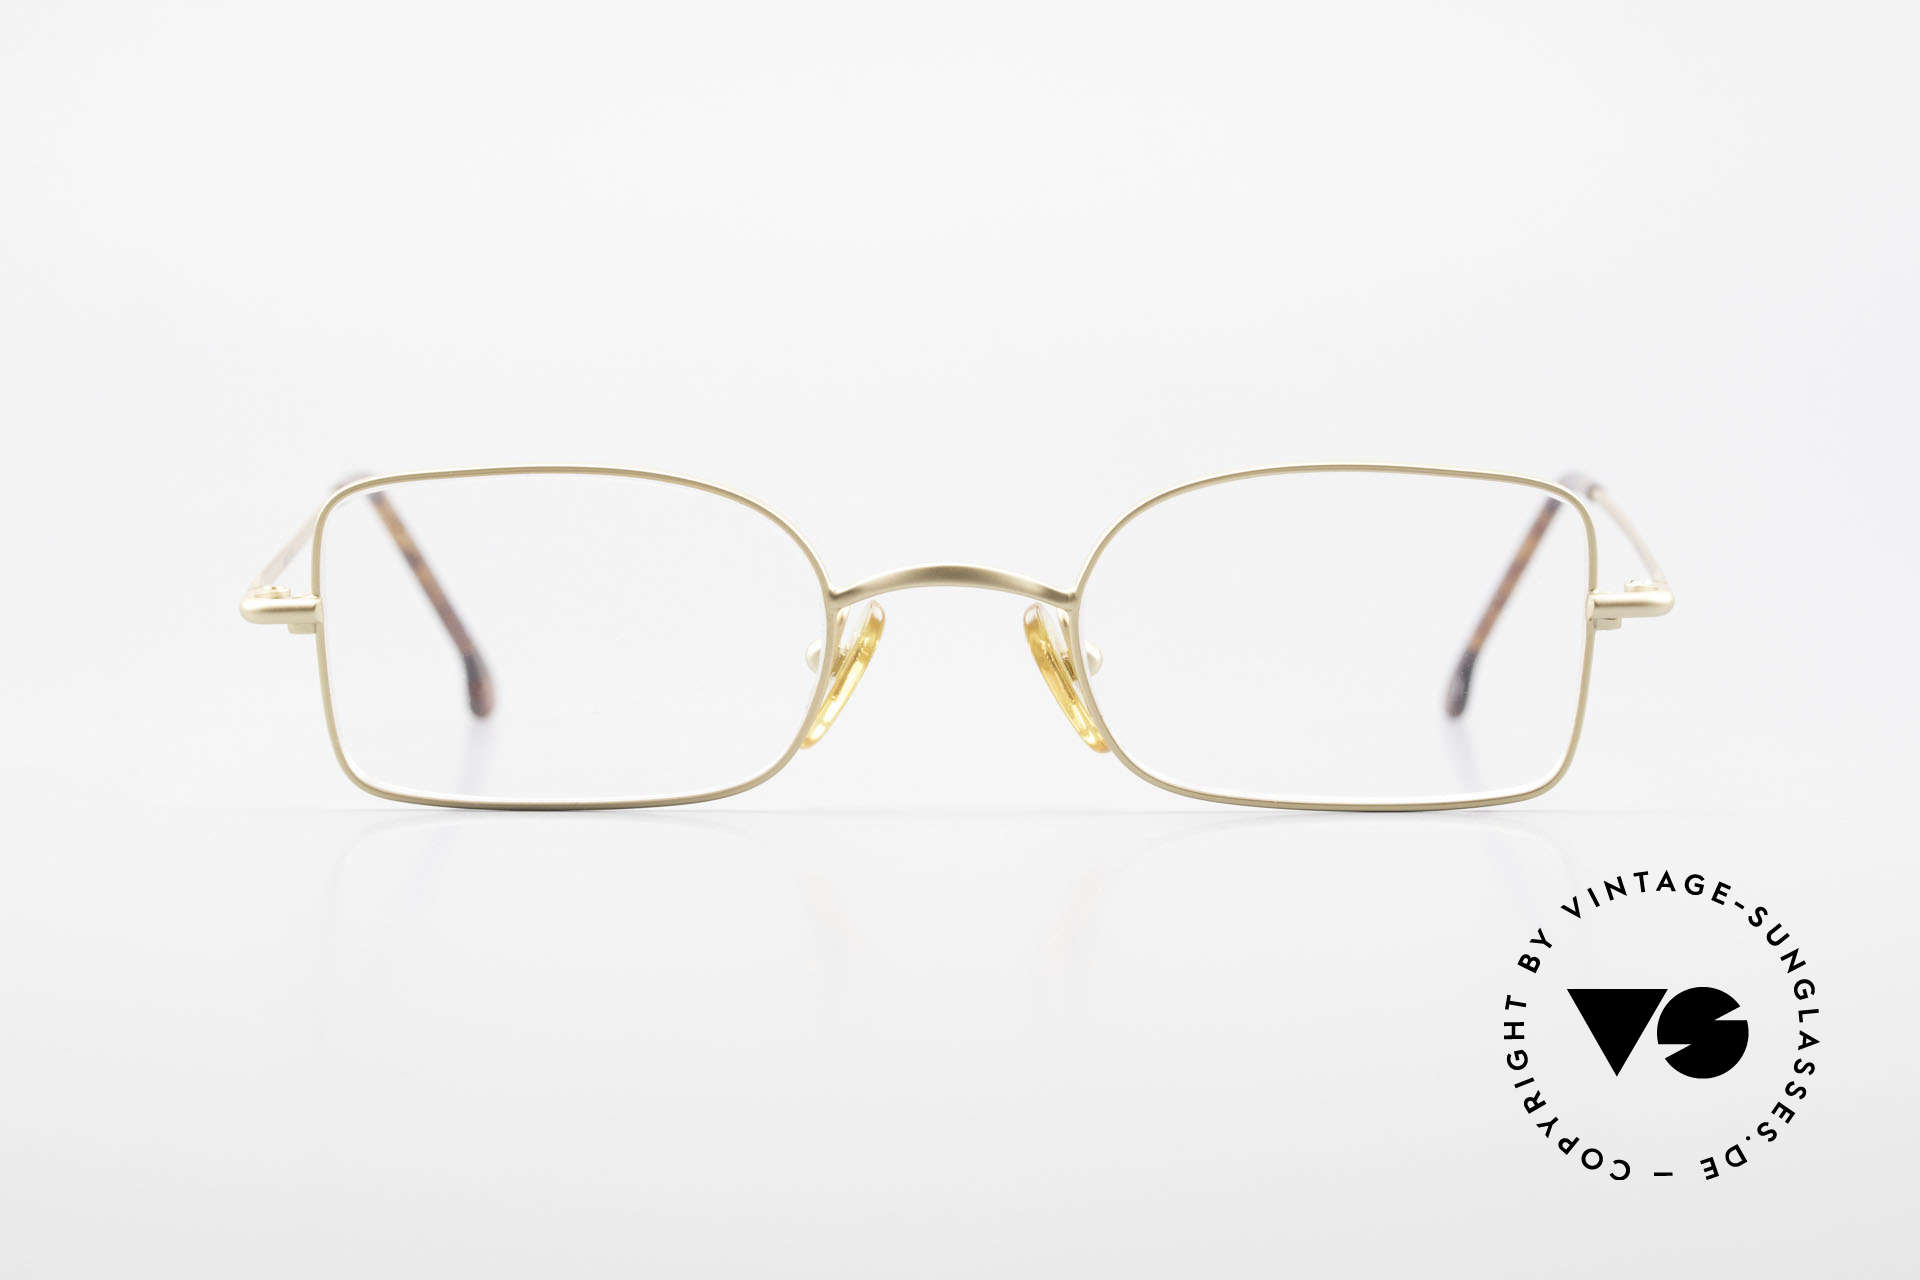 W Proksch's M19/9 Orig 90's Avantgarde Glasses, back then, produced by Wolfgang Proksch himself, Made for Men and Women